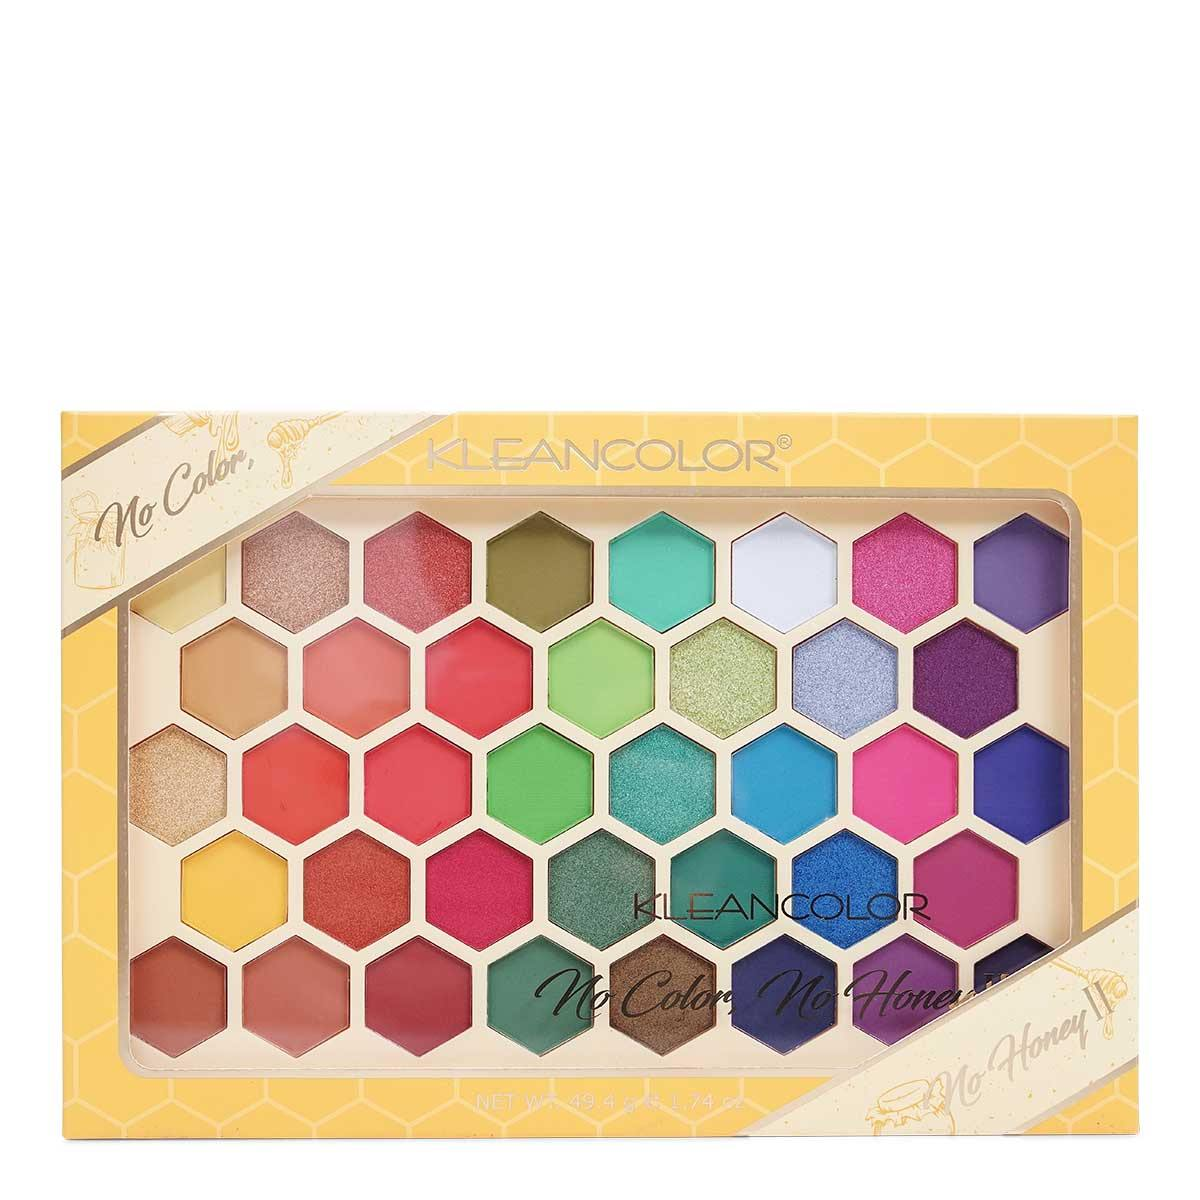 KLEANCOLOR No Color No Honey, 38 color Pressed Pigment Palette (ES1218) - Display of 6 units